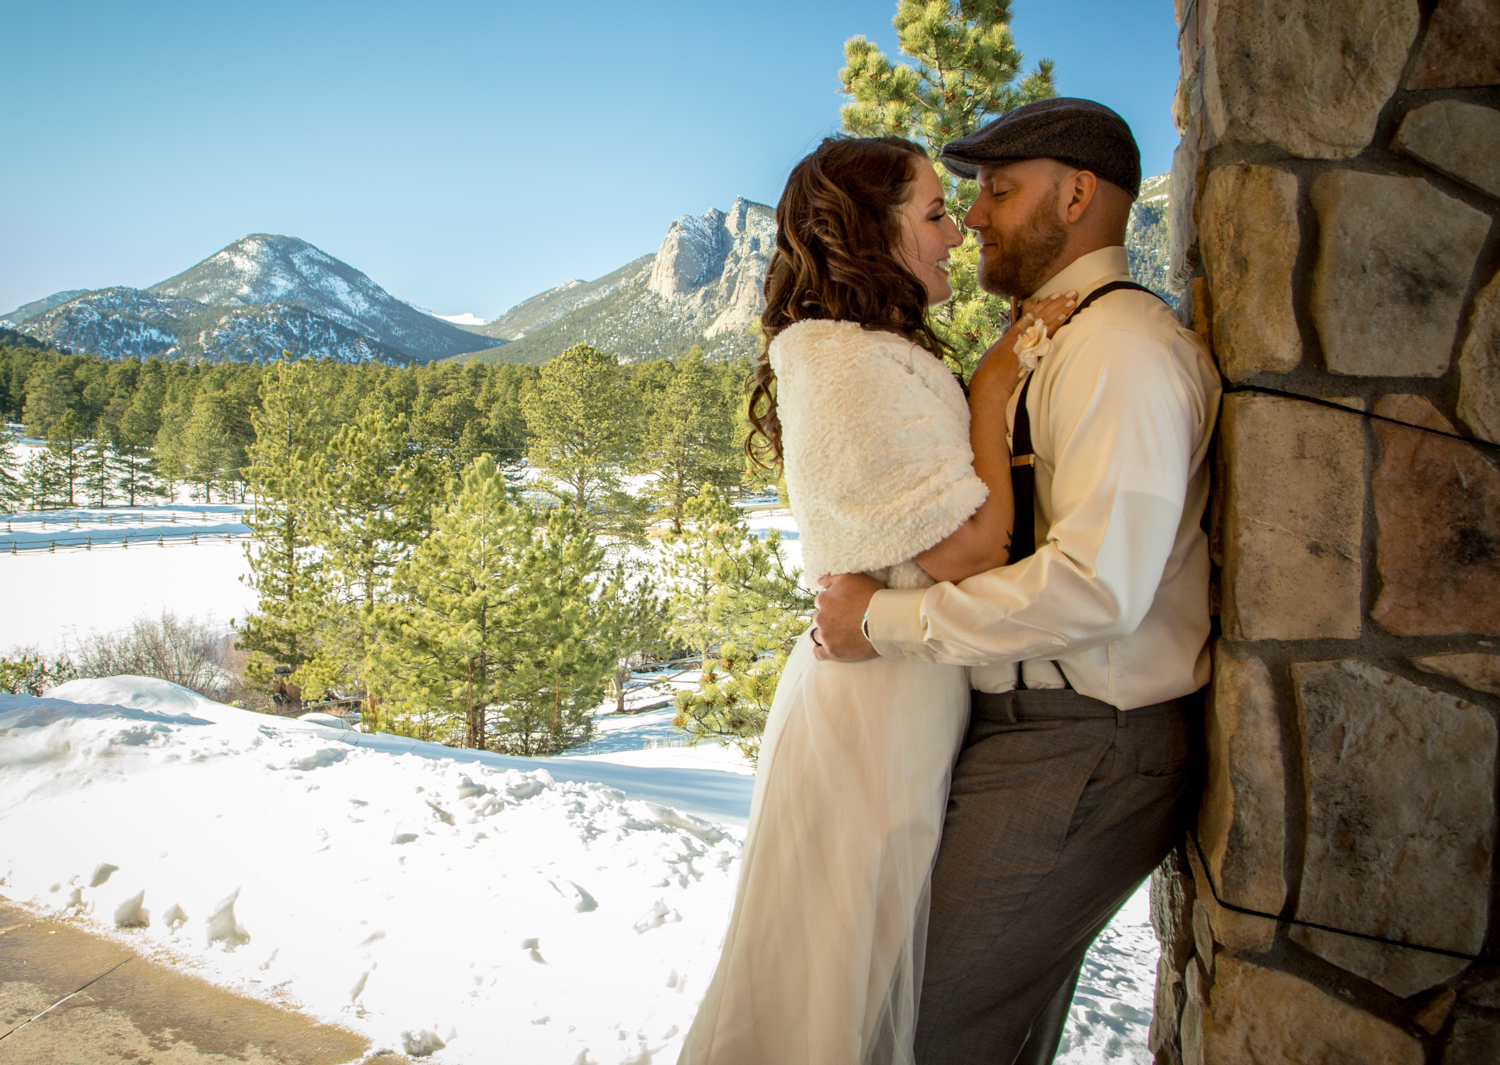 Bawden Wedding in Estes Park, Colorado